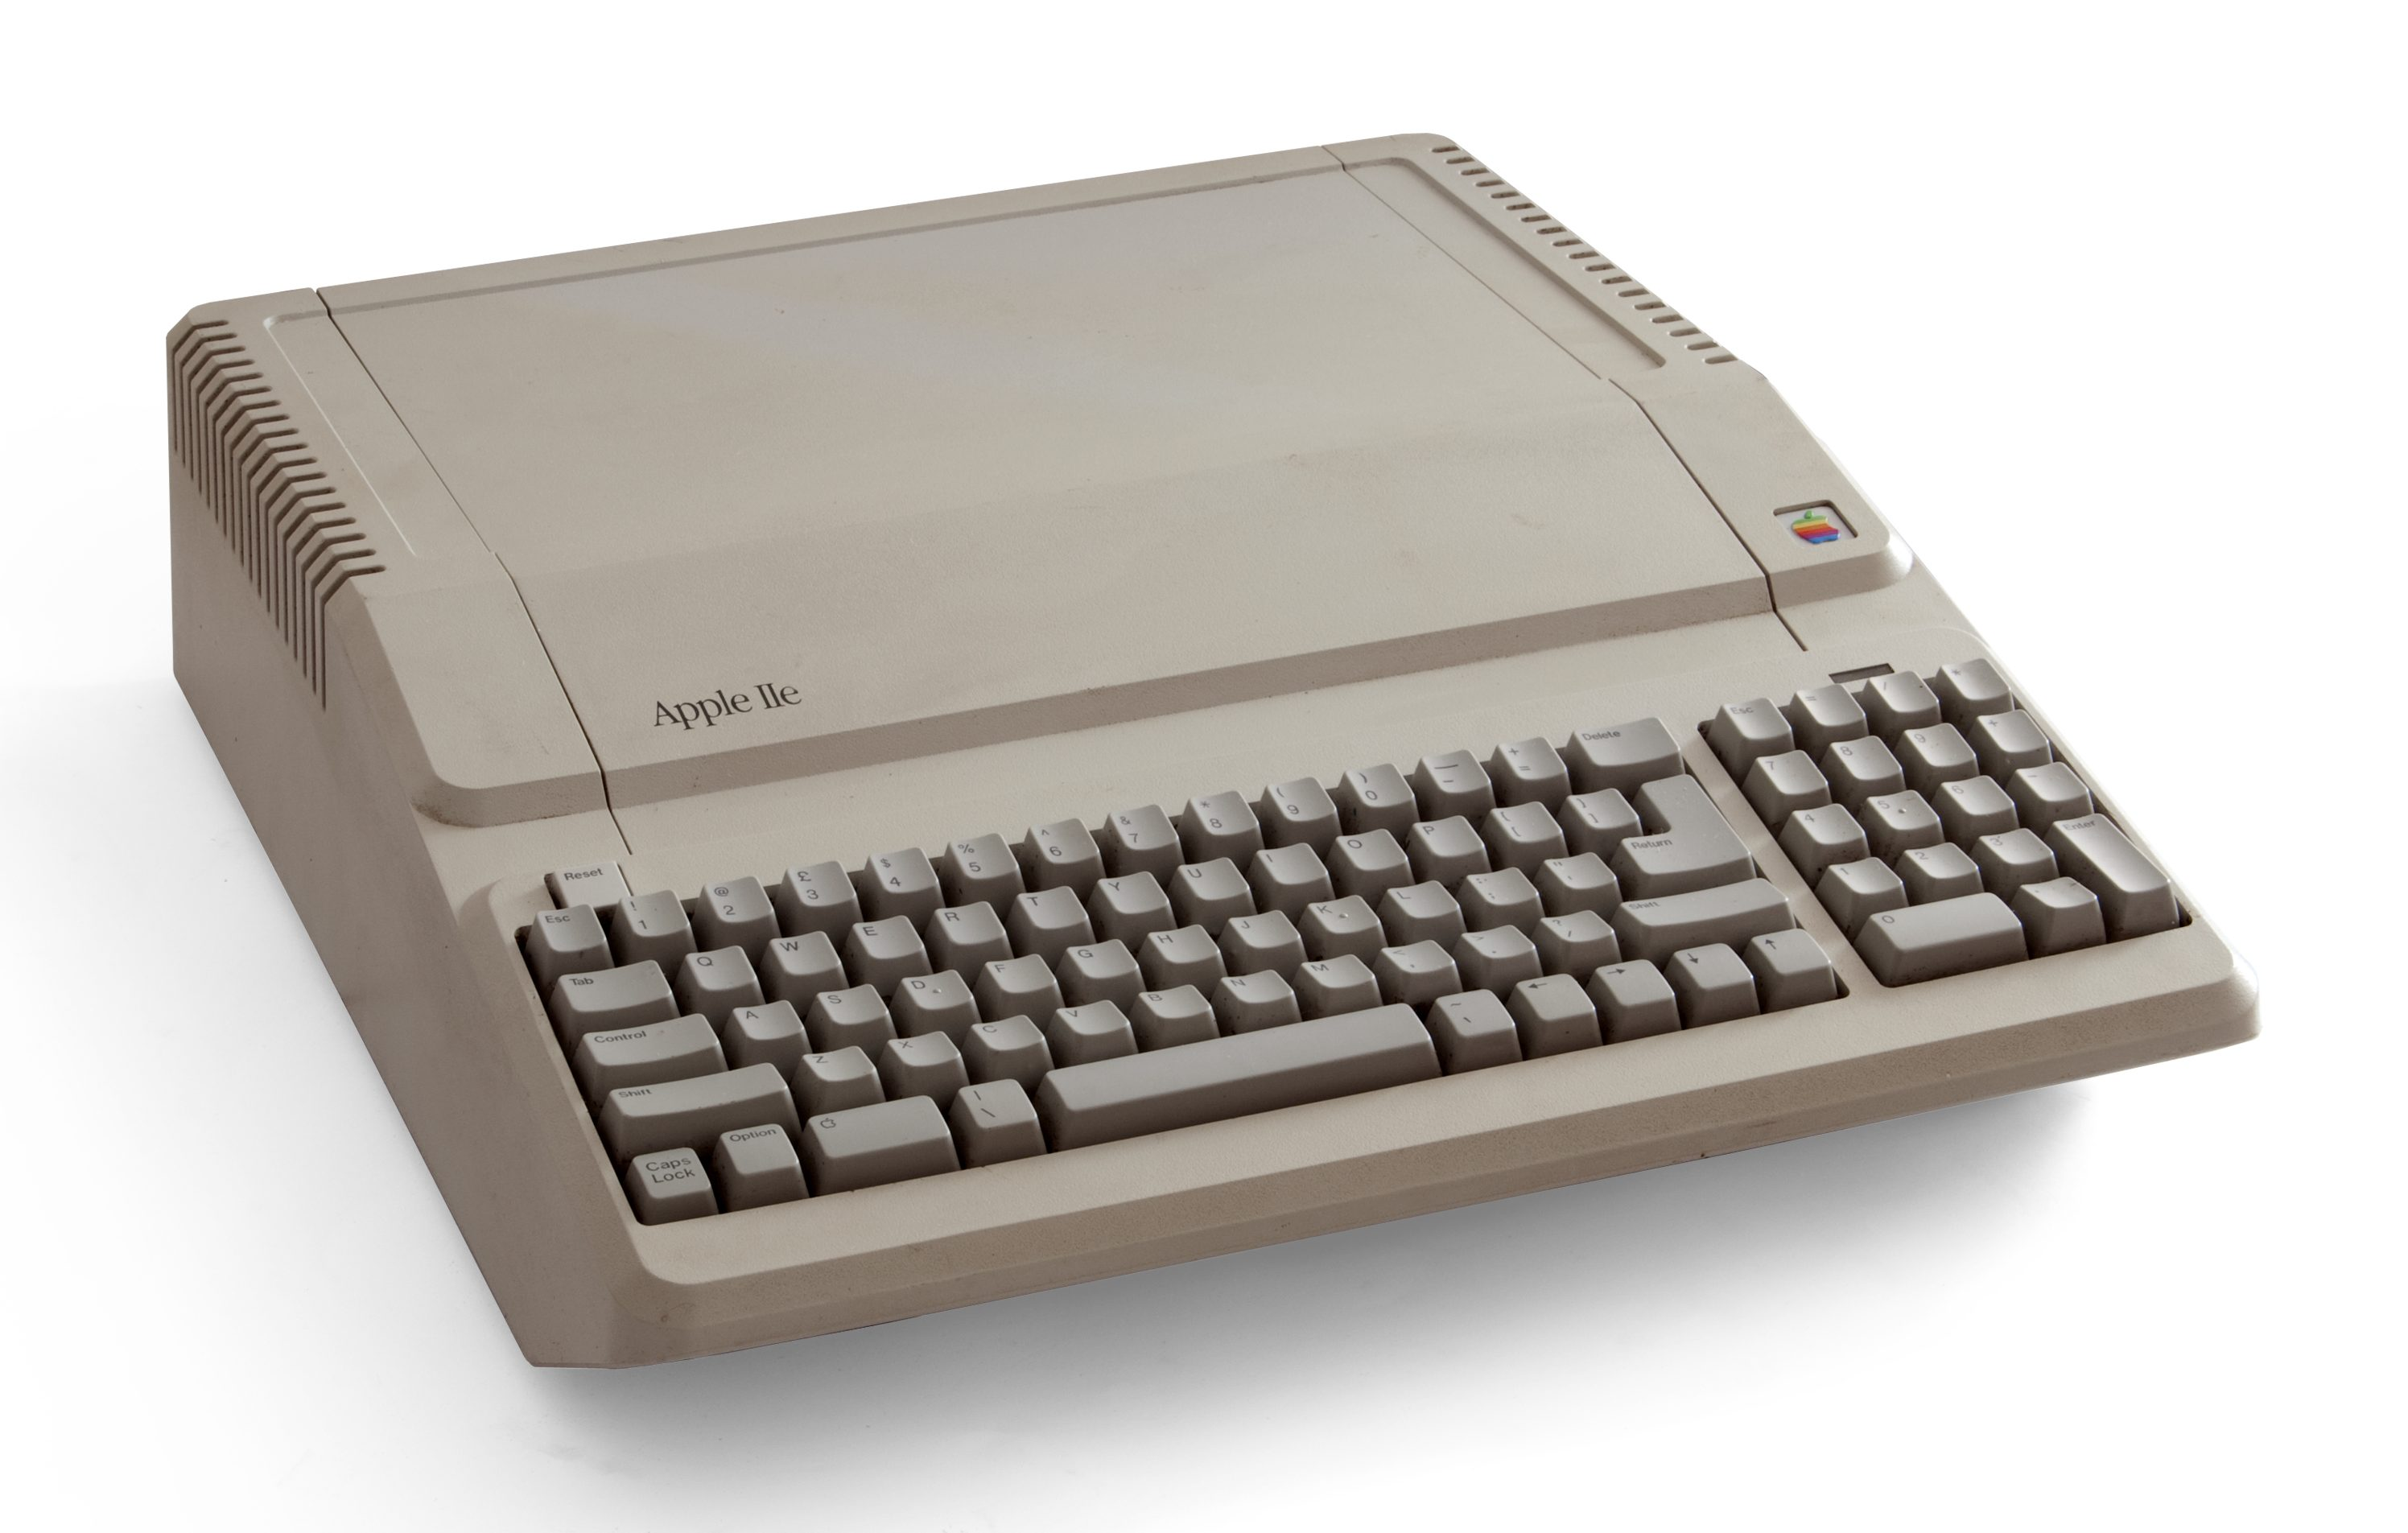 Fixing repeating key presses on an Apple IIe Platinum